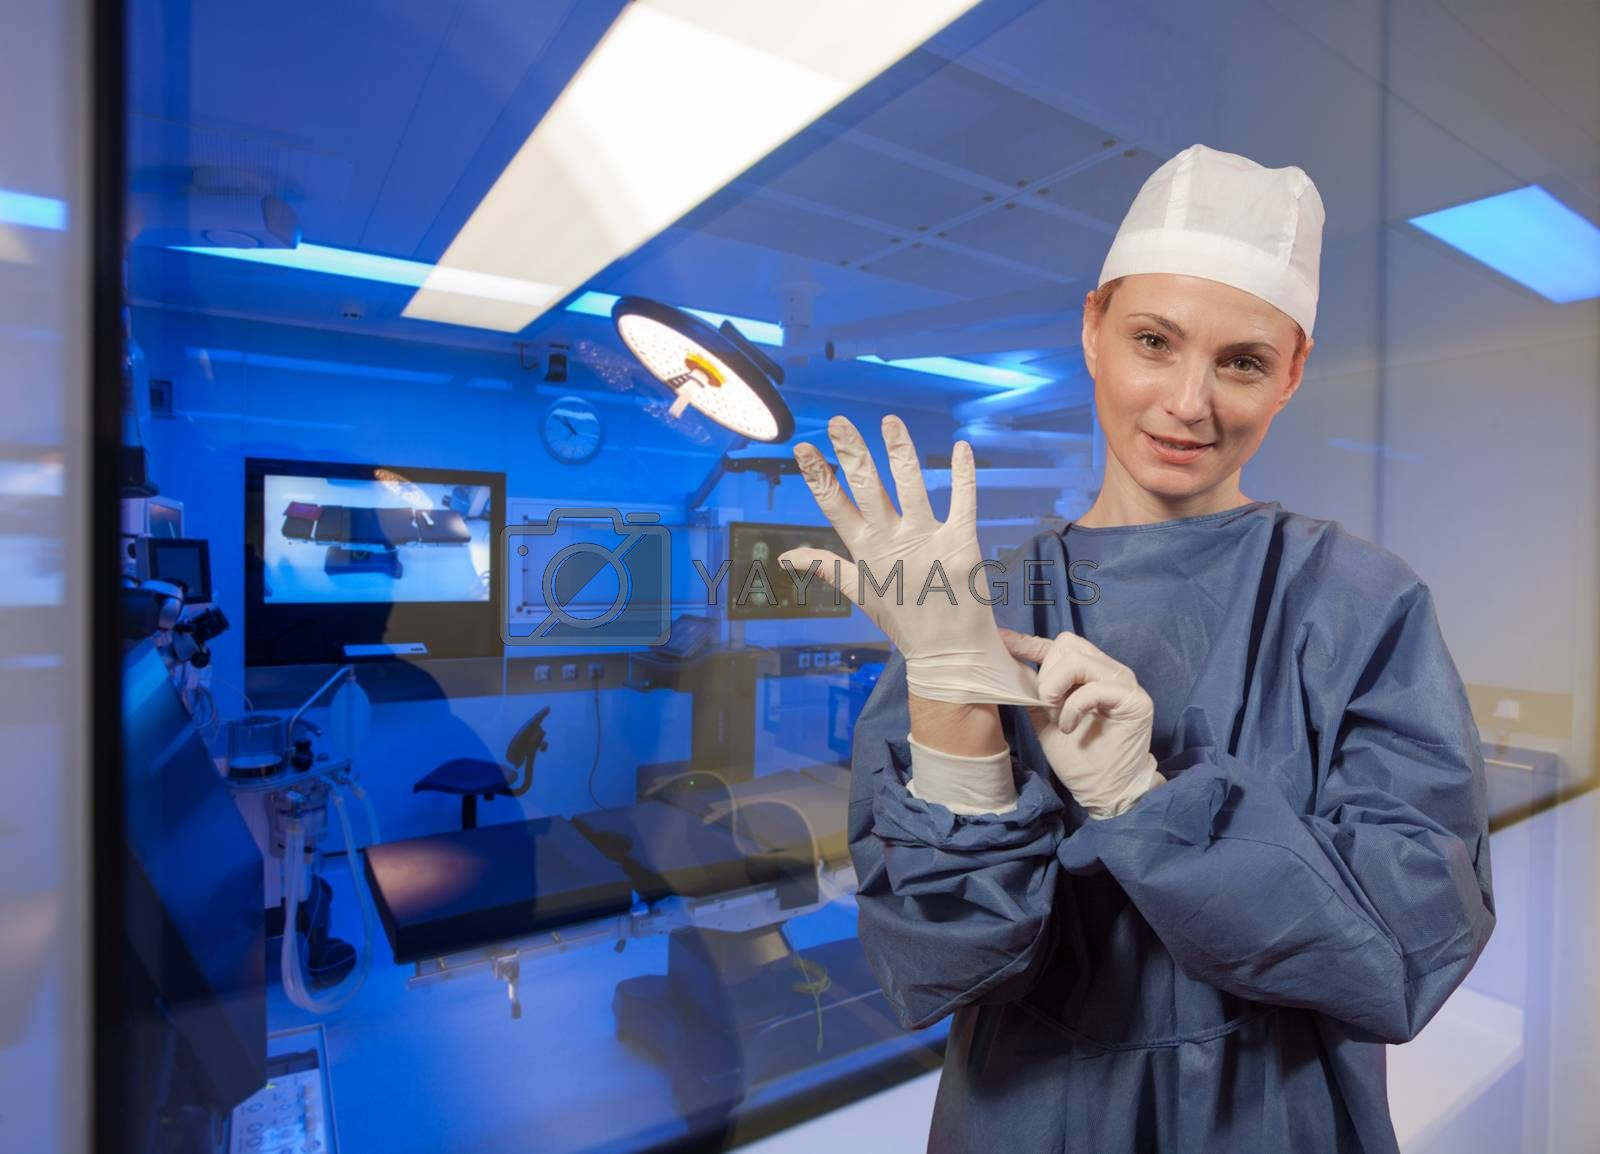 A medical personal putting protective surgeons glove in front of operating room.